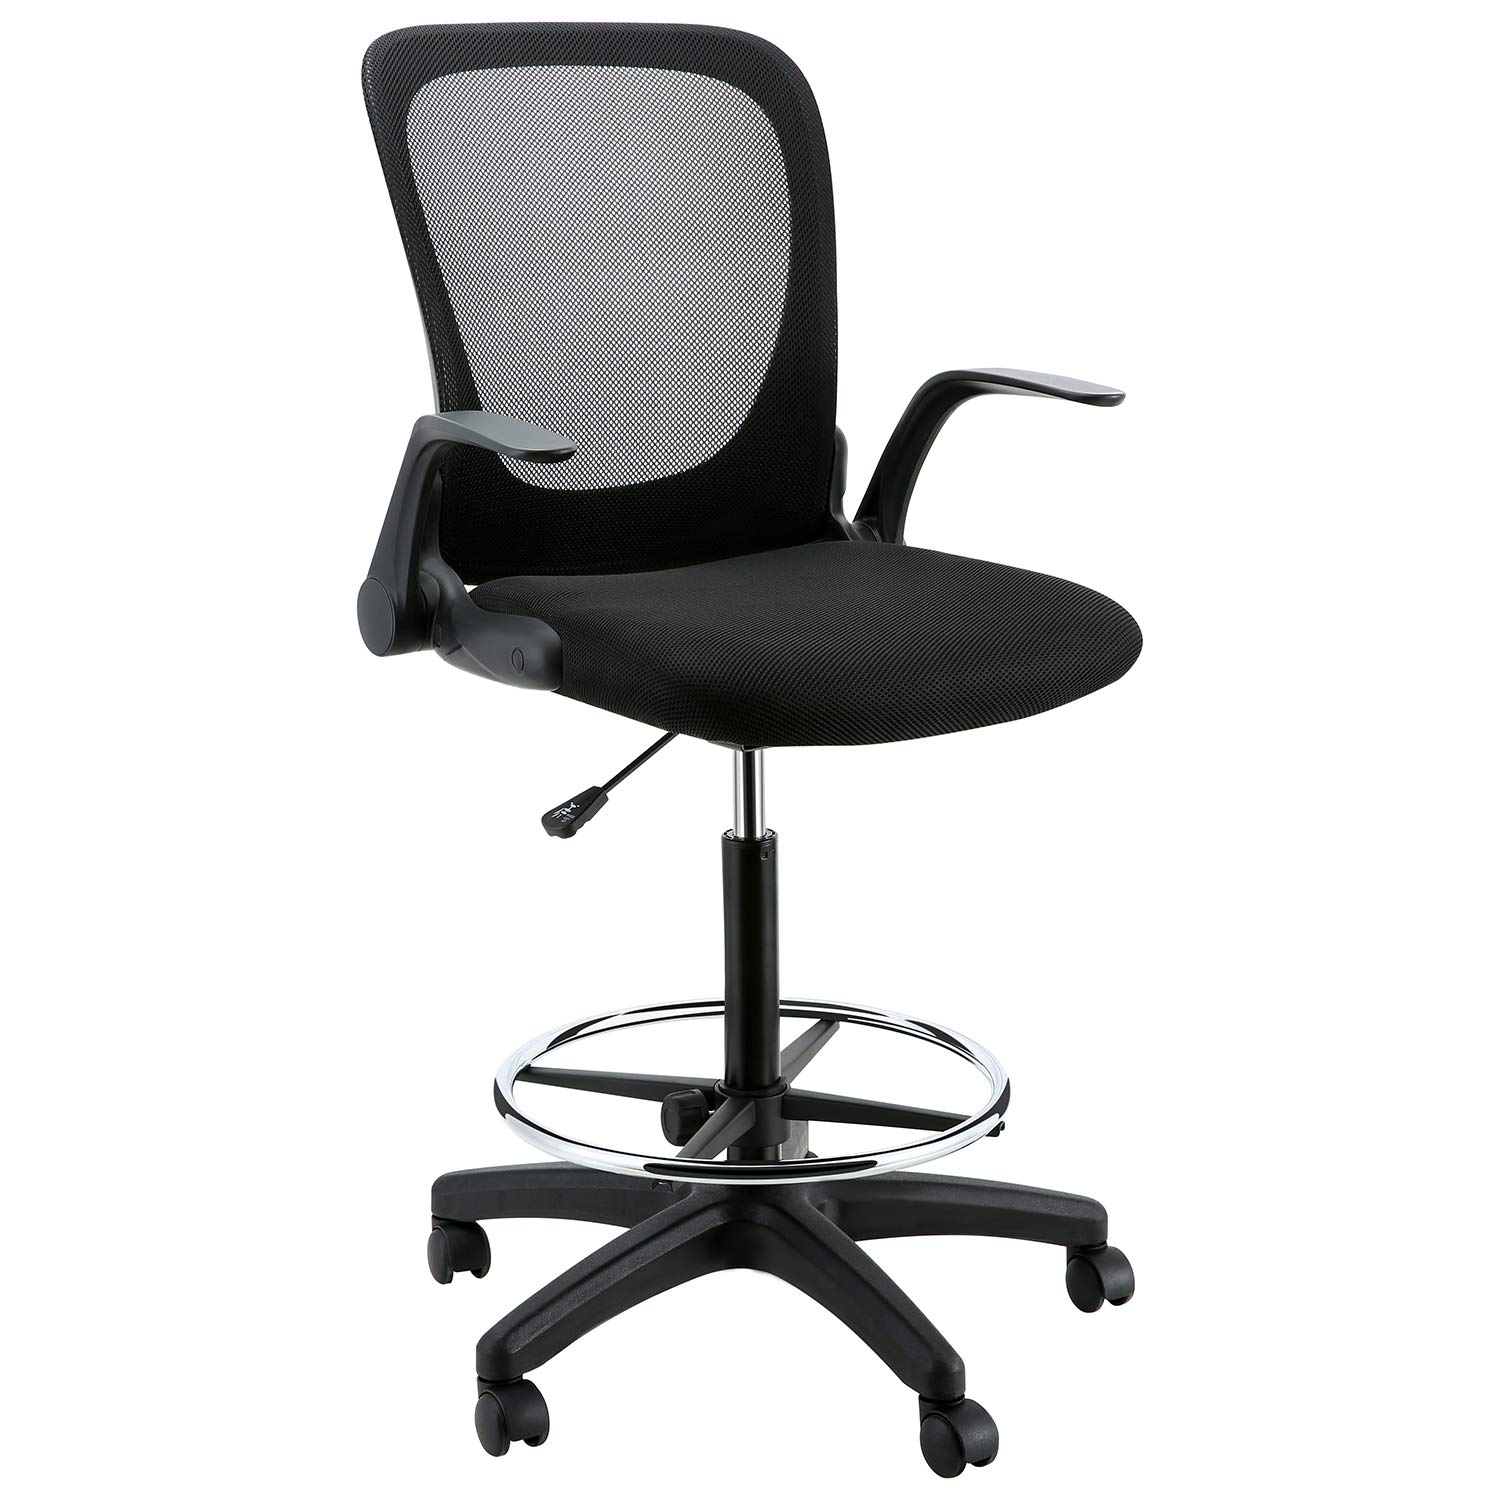 YOUNIS Drafting Chair with Black Fabric Seat, Adjustable Armrest and Foot Ring, Black Breathable mesh backrest, Reception Desk Chair, Tall Office Chair by YOUNIS (Image #7)